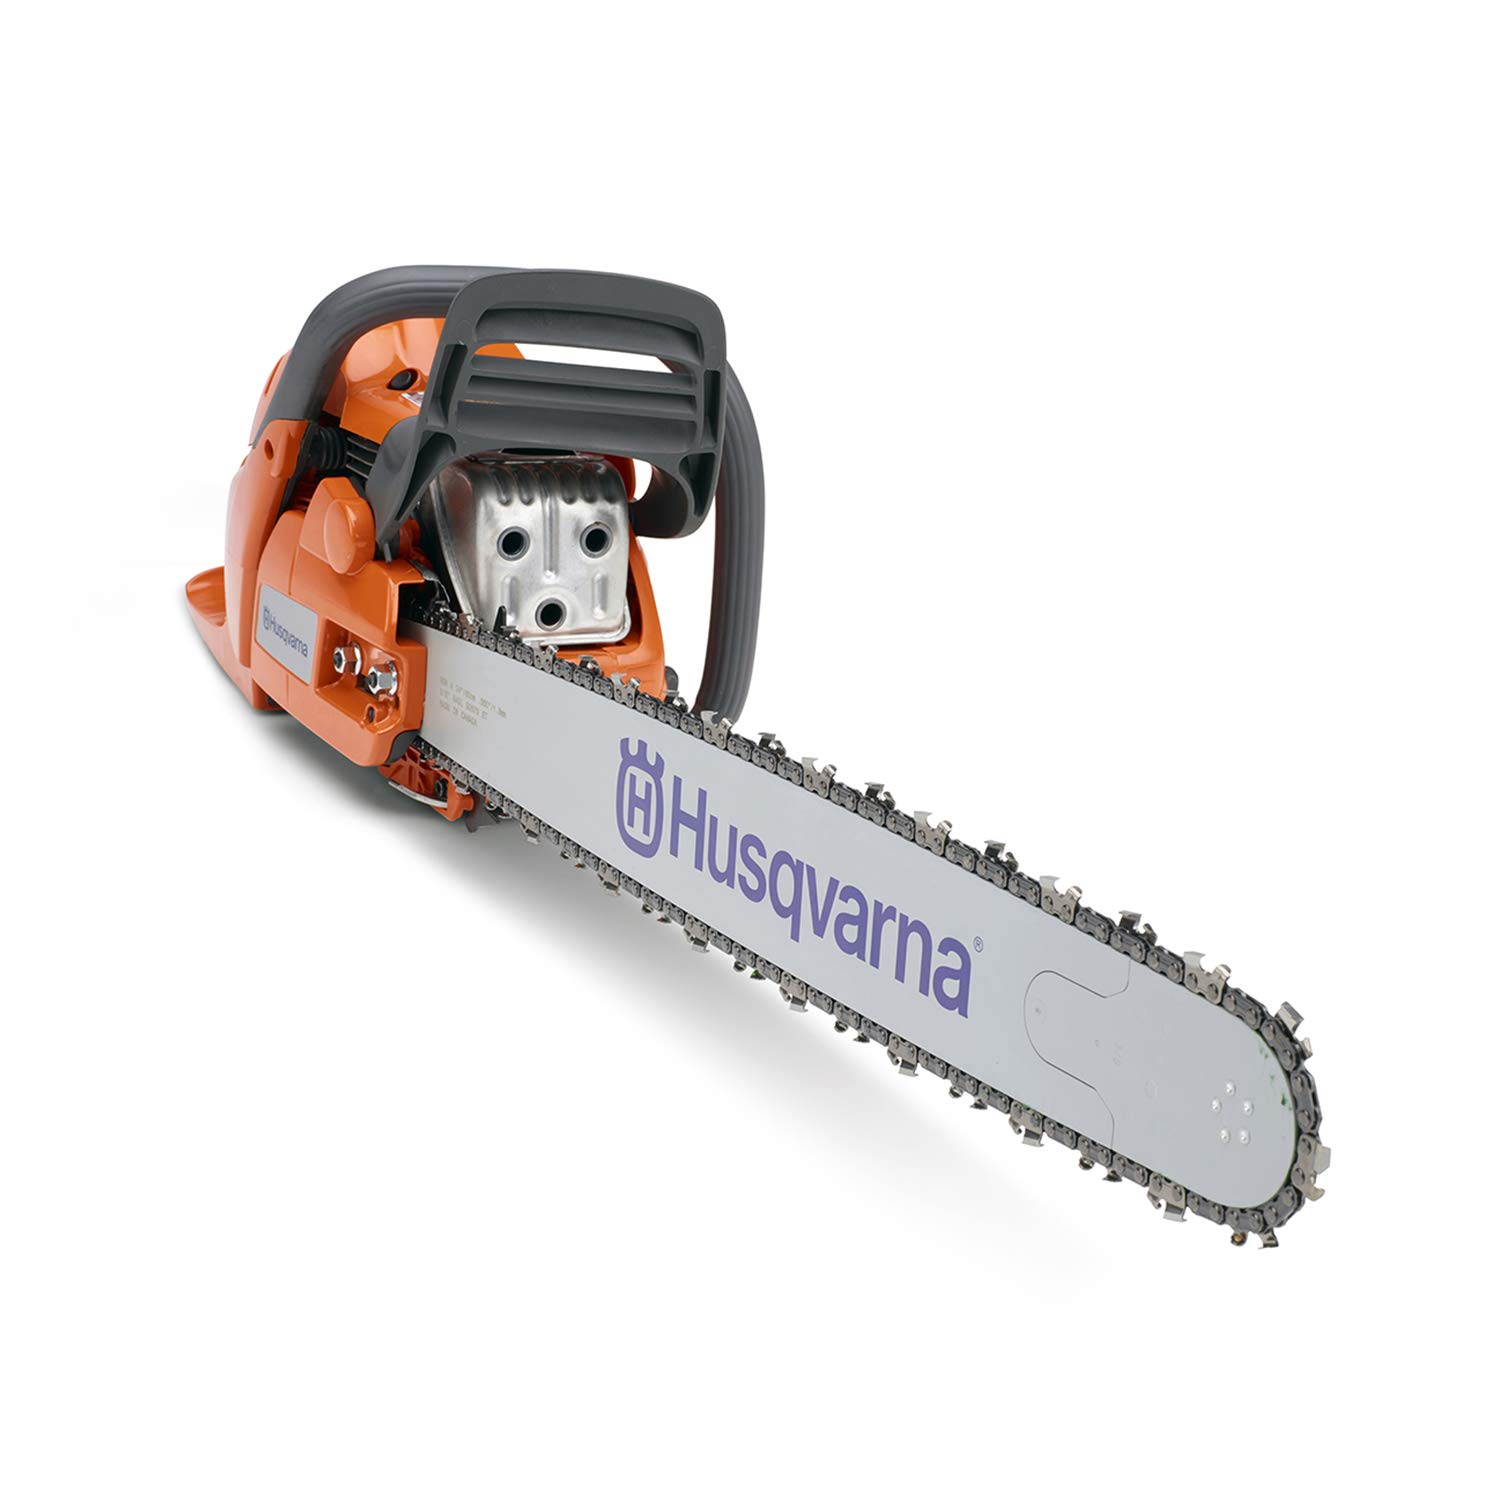 Husqvarna 460 Rancher Chainsaws product image 8